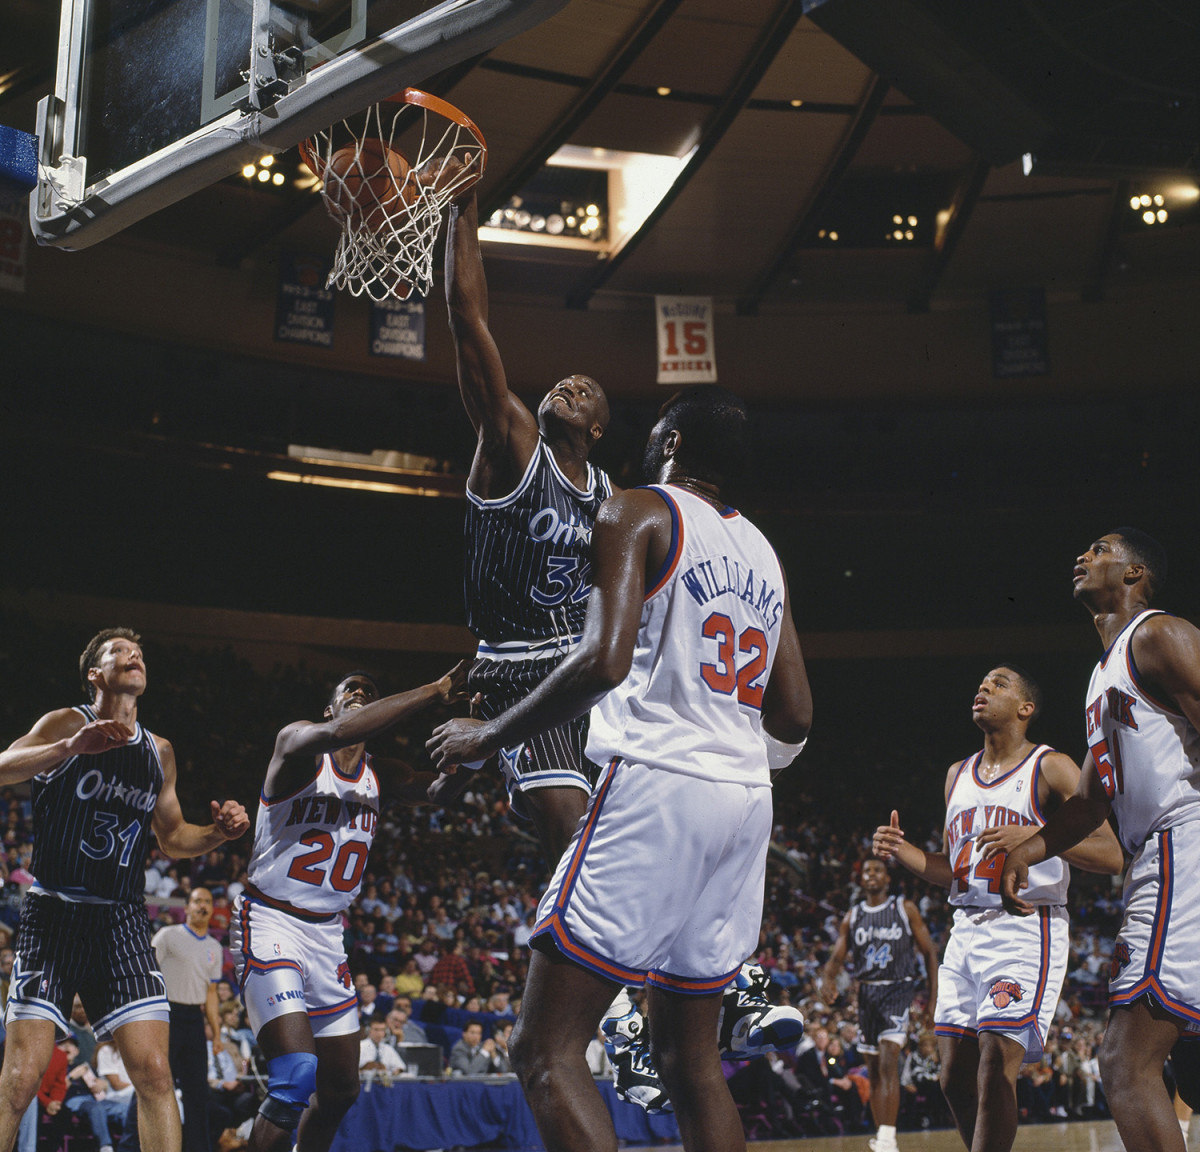 Shaquille O'Neal dunk msg.jpg